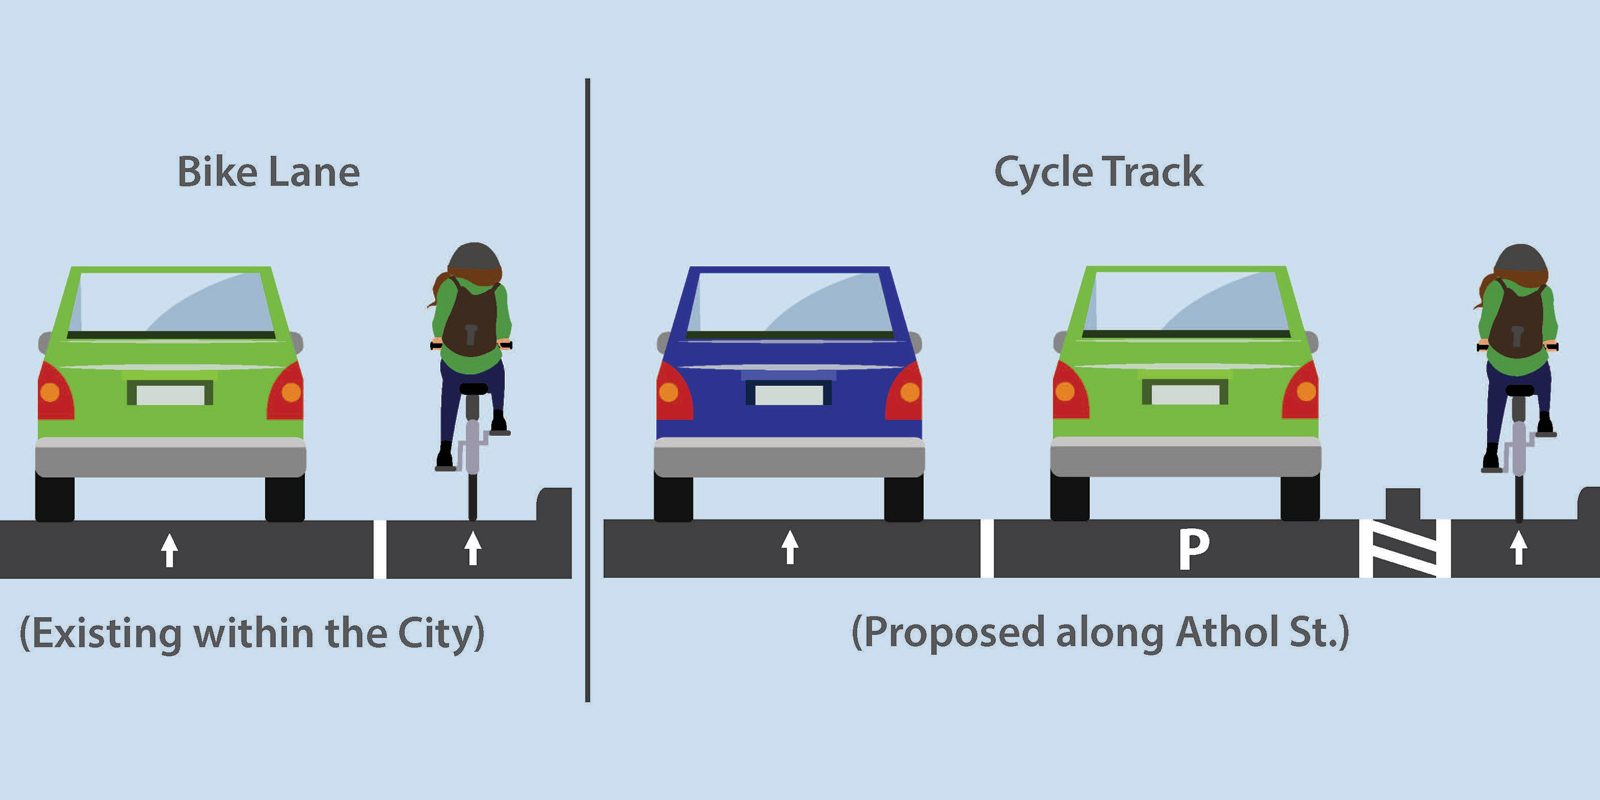 Illustration of the difference between a bike lane and a cycle track